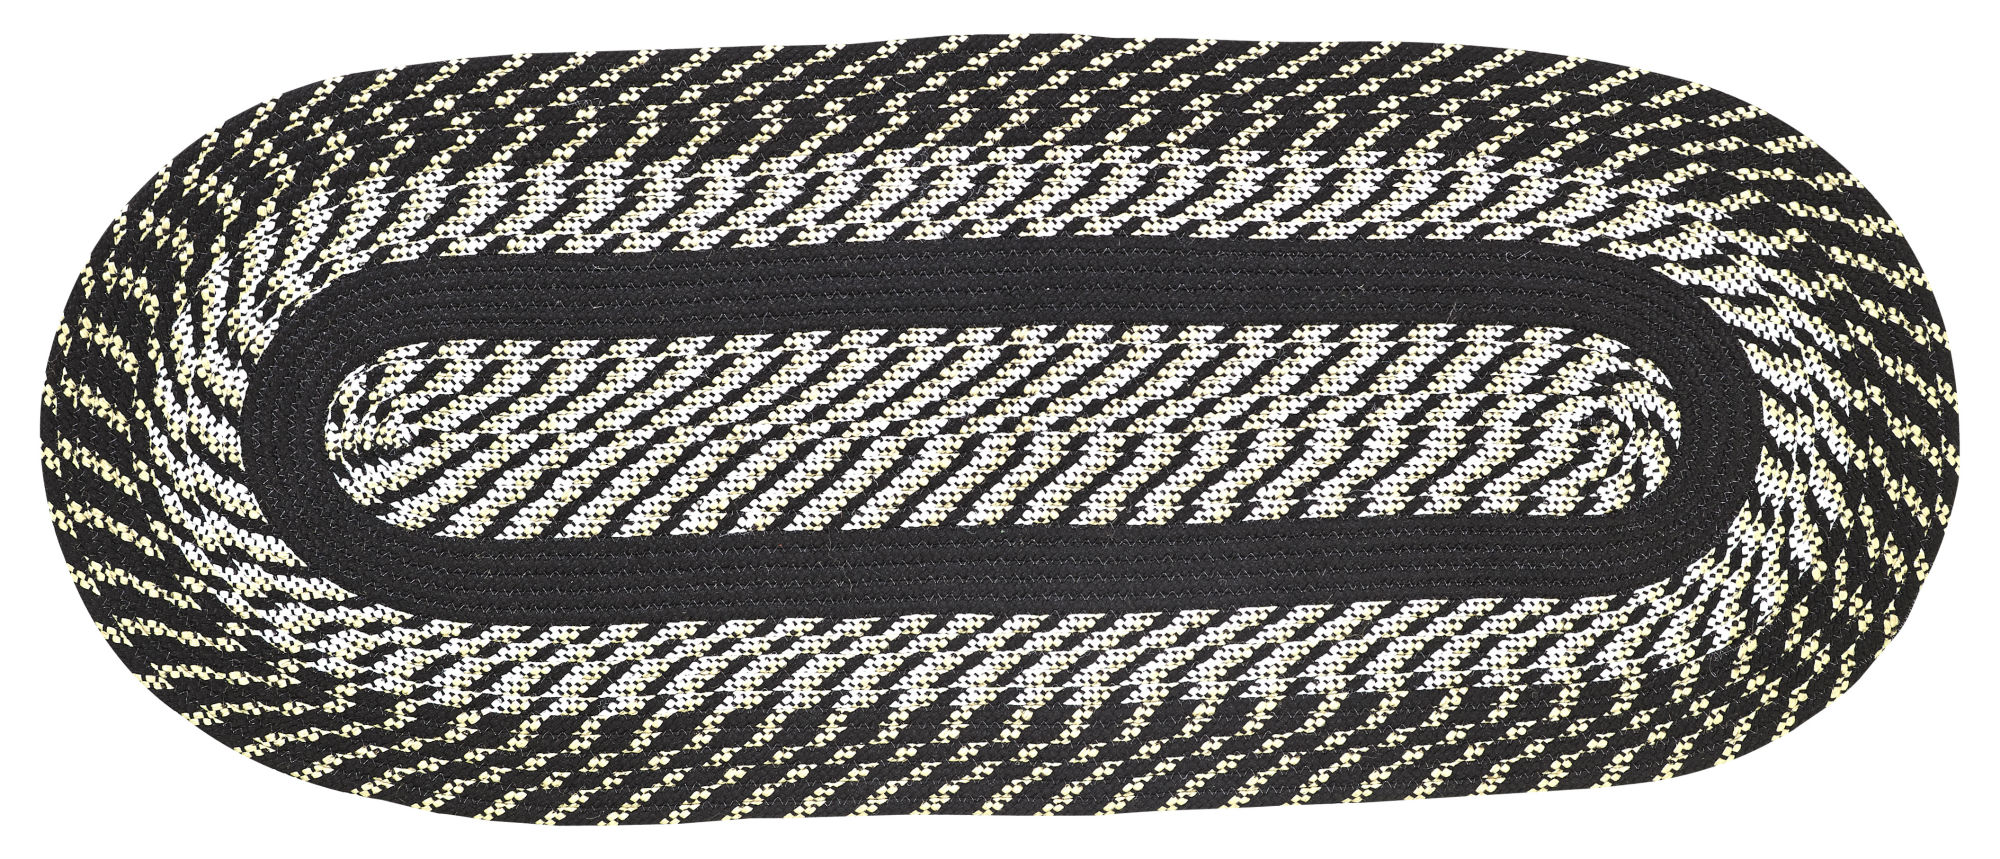 Newport 2'X6' Braided Rug Black by Pan Overseas LLC